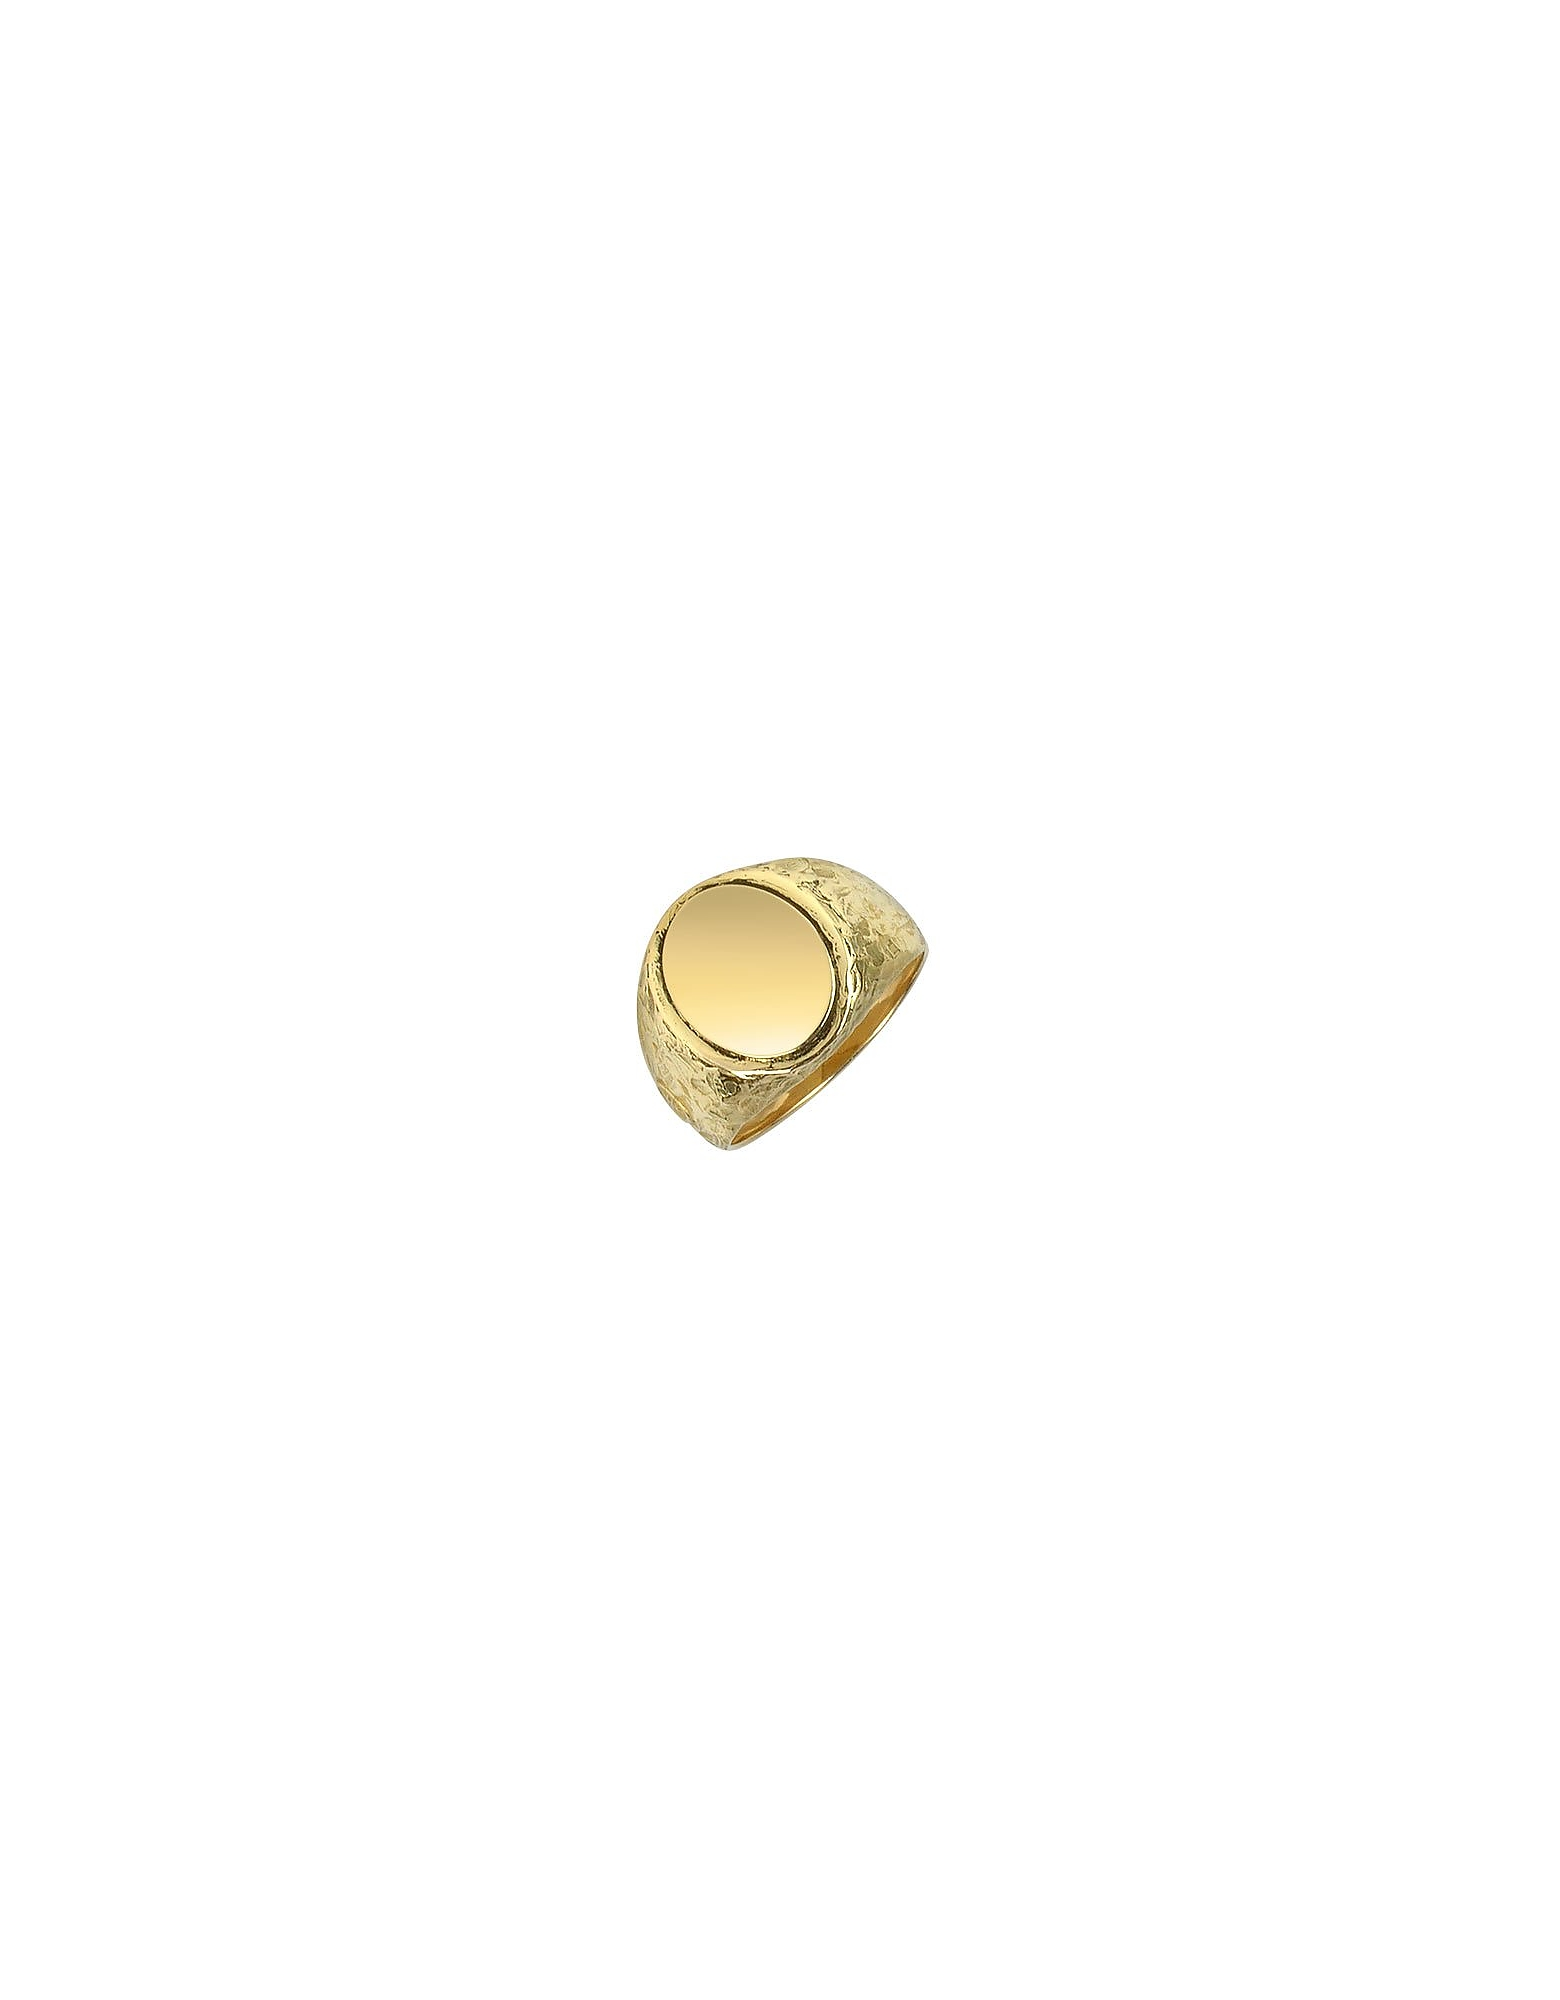 Torrini Men's Rings, Oval 18K Yellow Gold Men's Ring